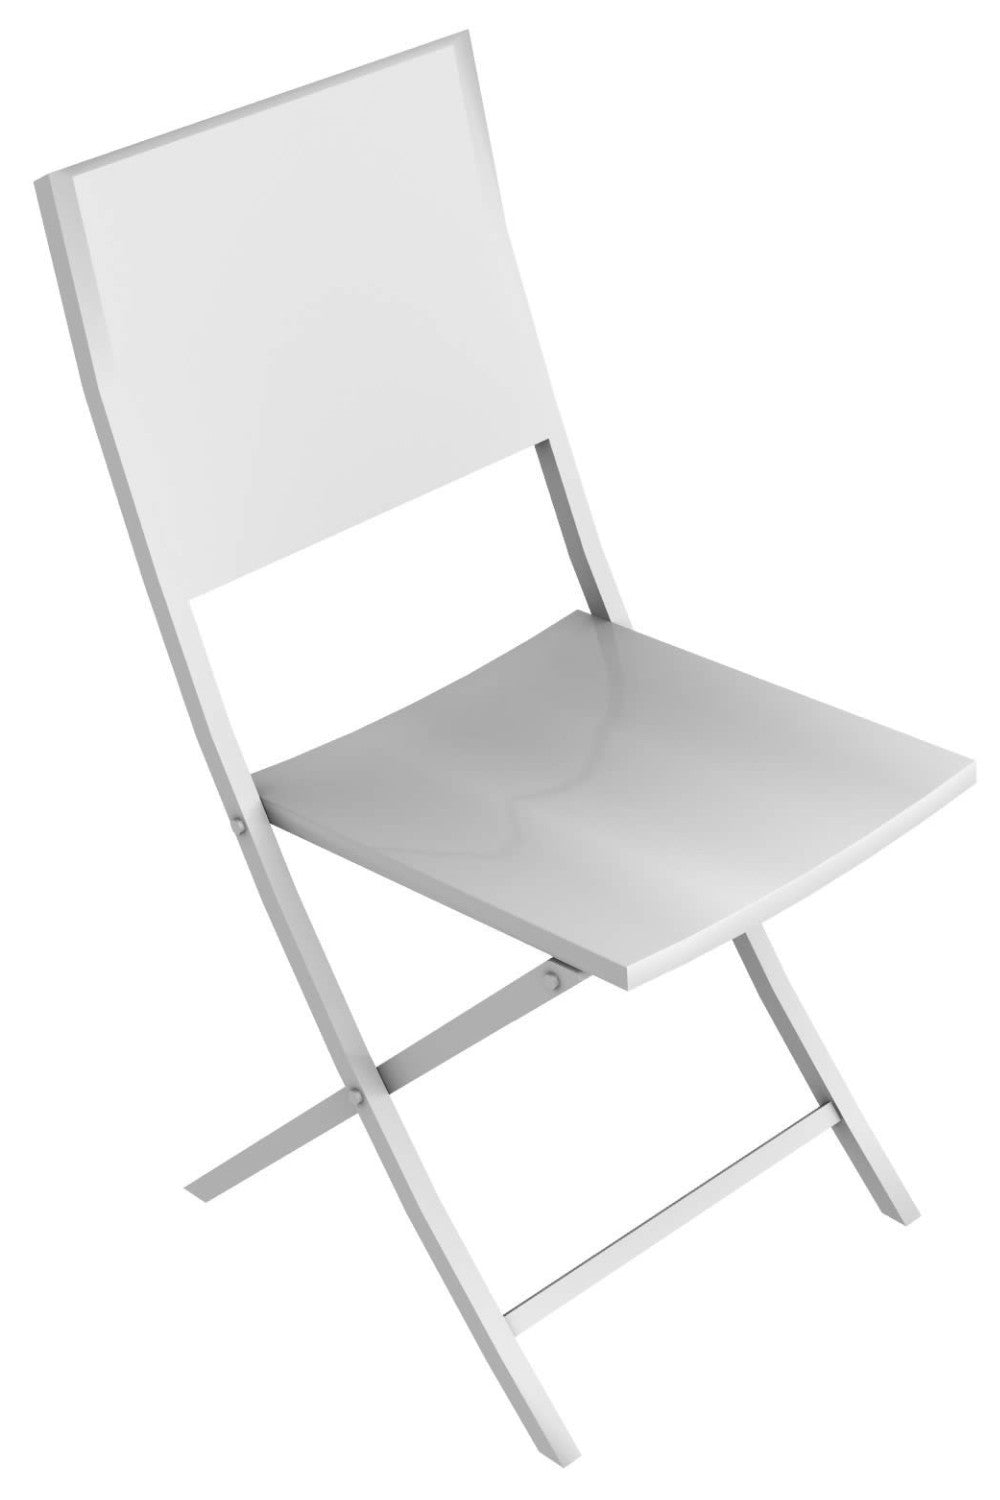 Conrad Niebla iron folding chair